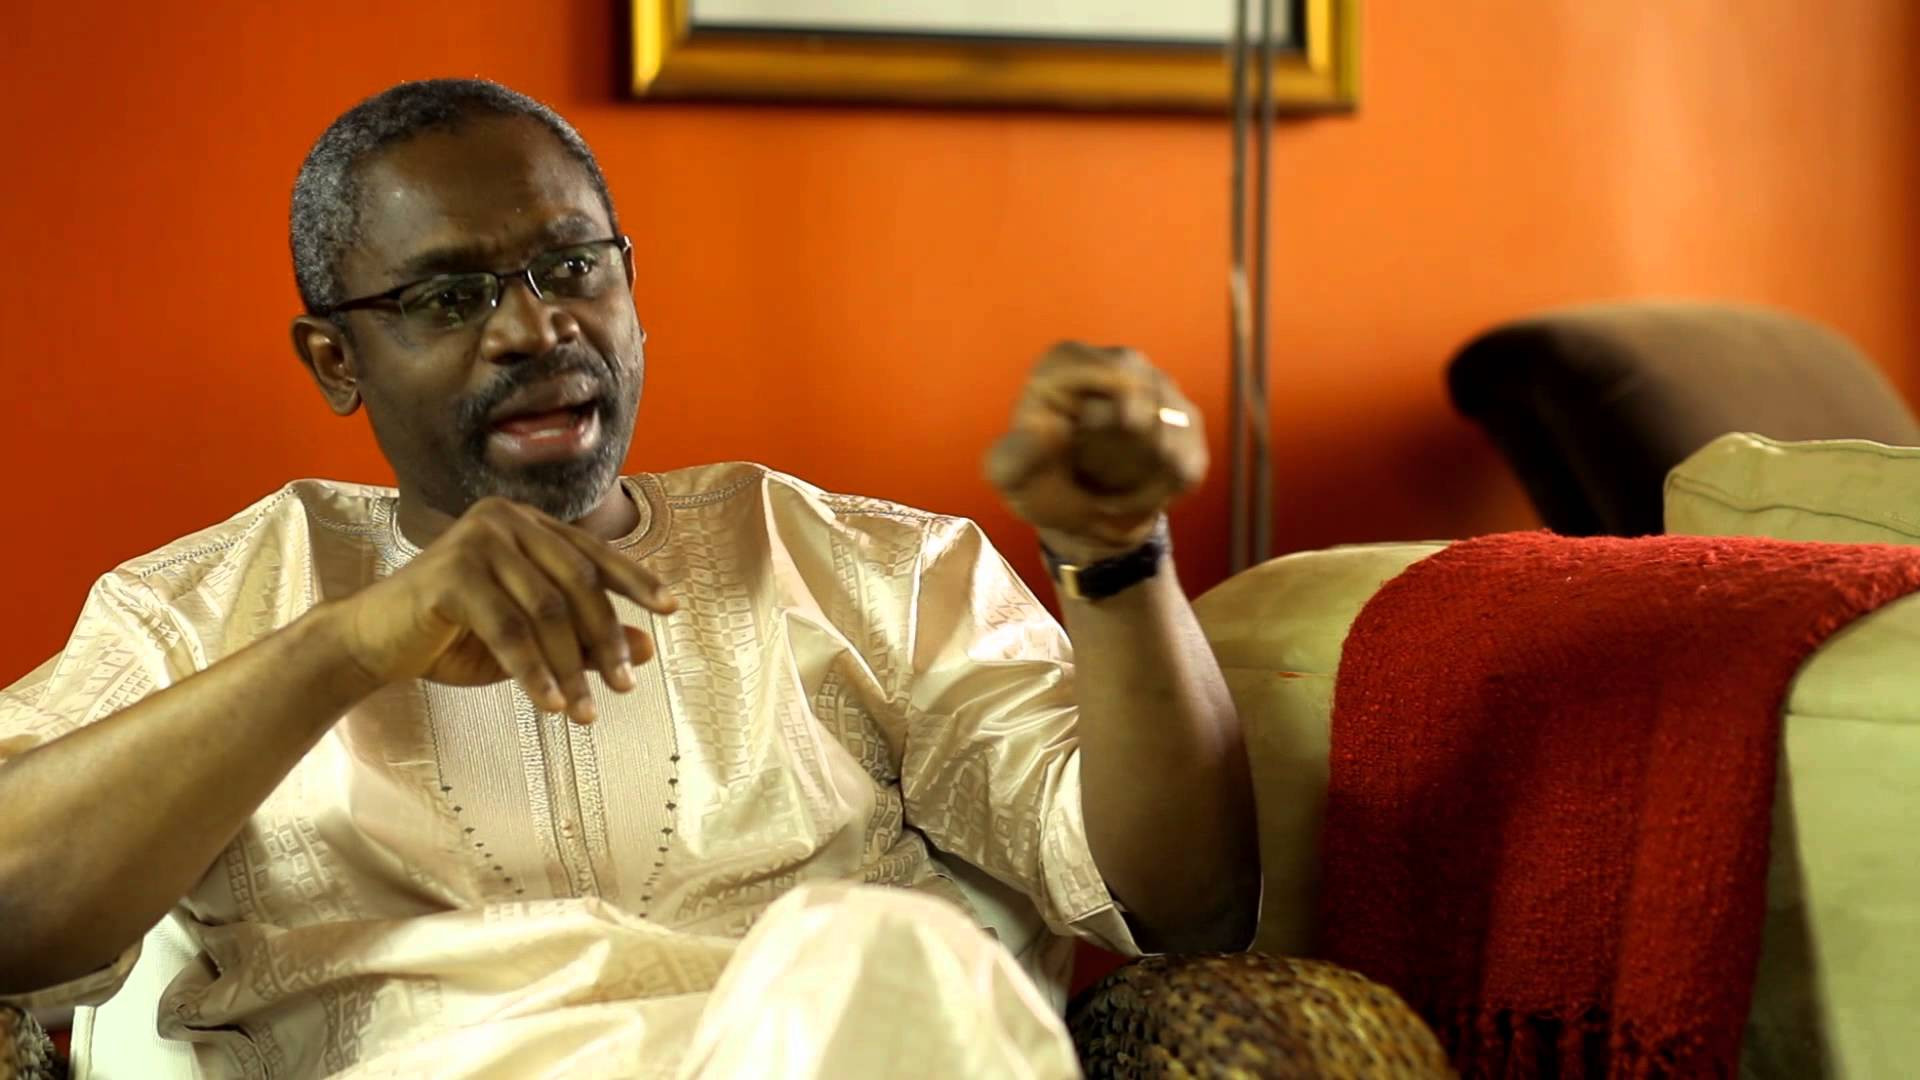 Their lives should not go in vain - Gbajabiamila condemns killing of Borno farmers by Boko Haram insurgents